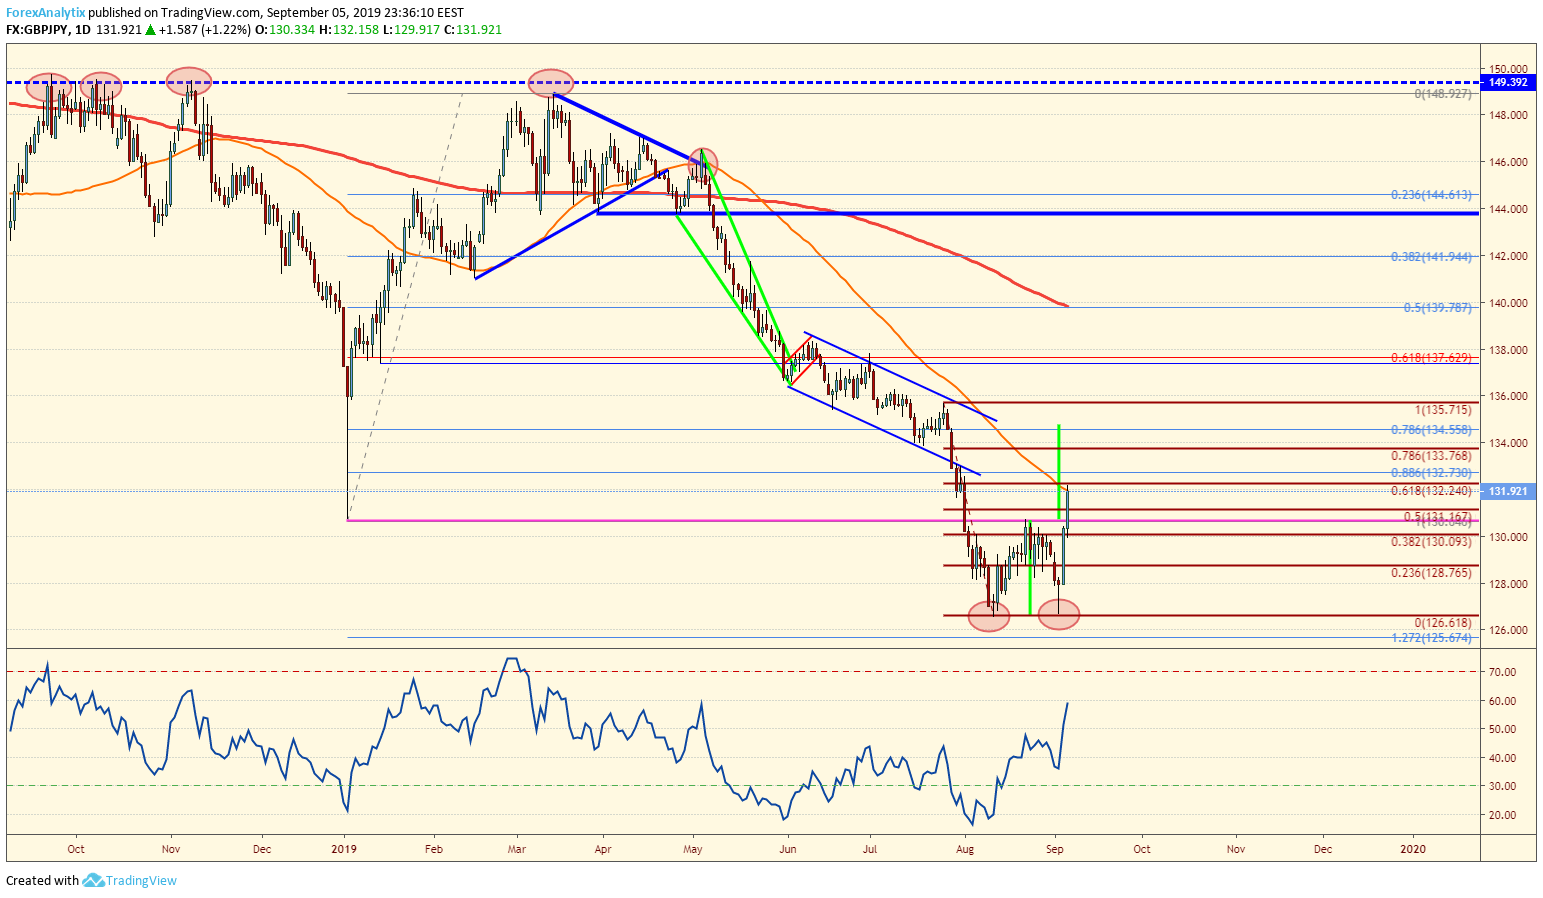 GBPJPY Double Bottom